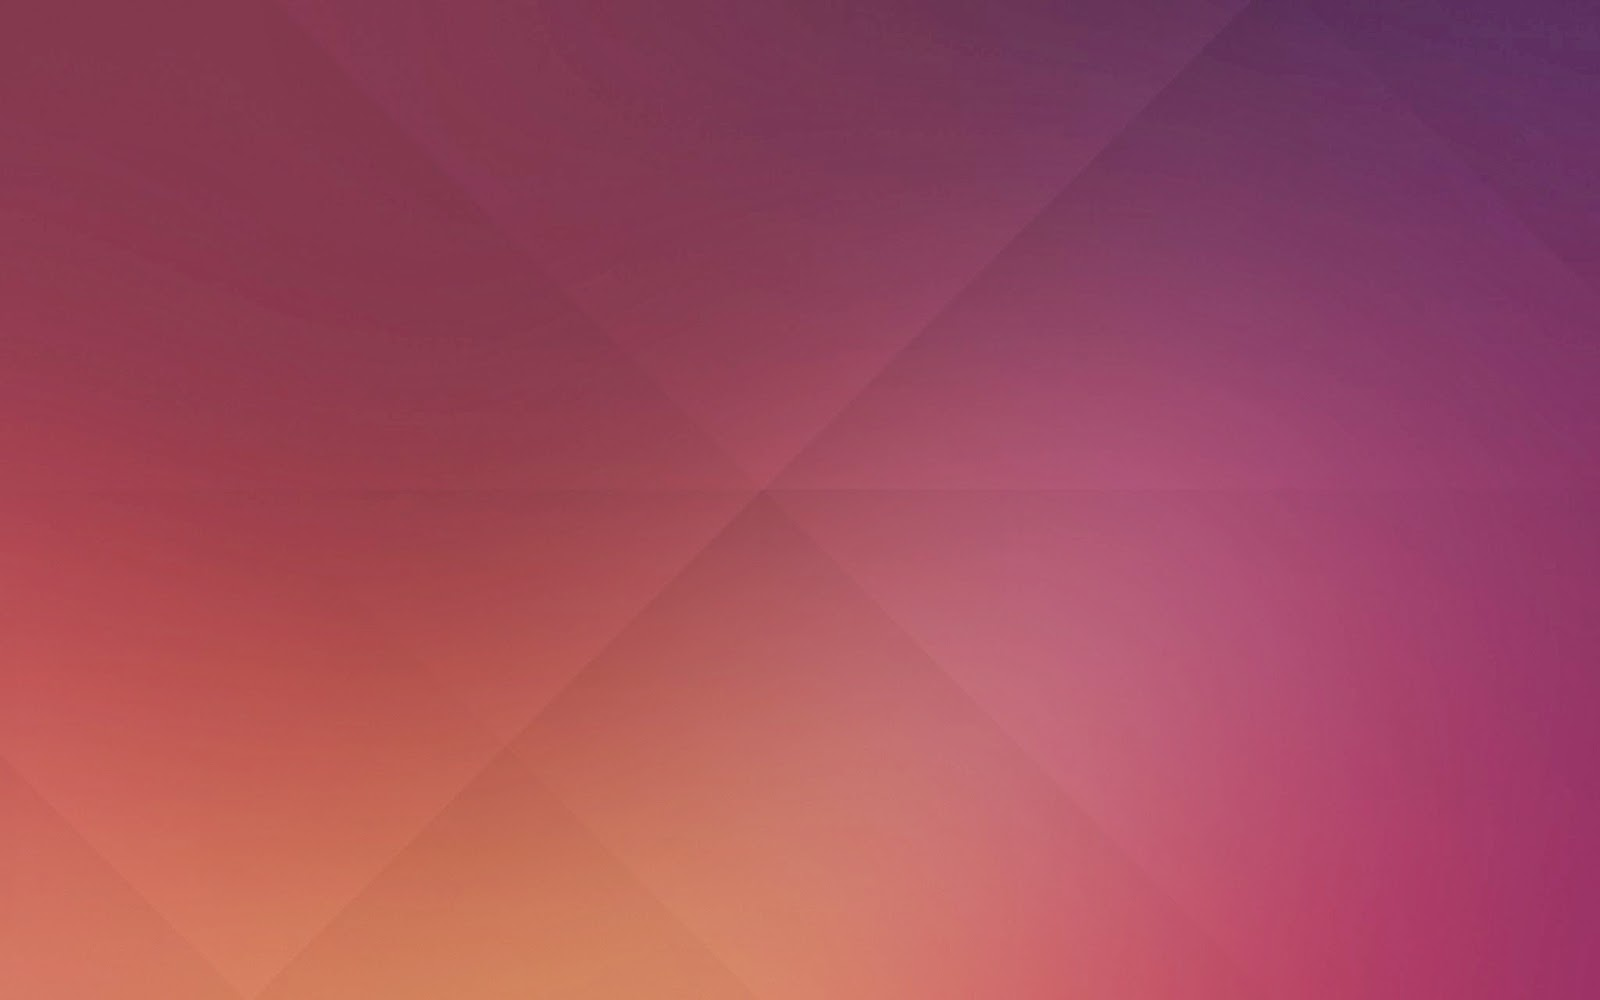 The default background of Ubuntu 14.04